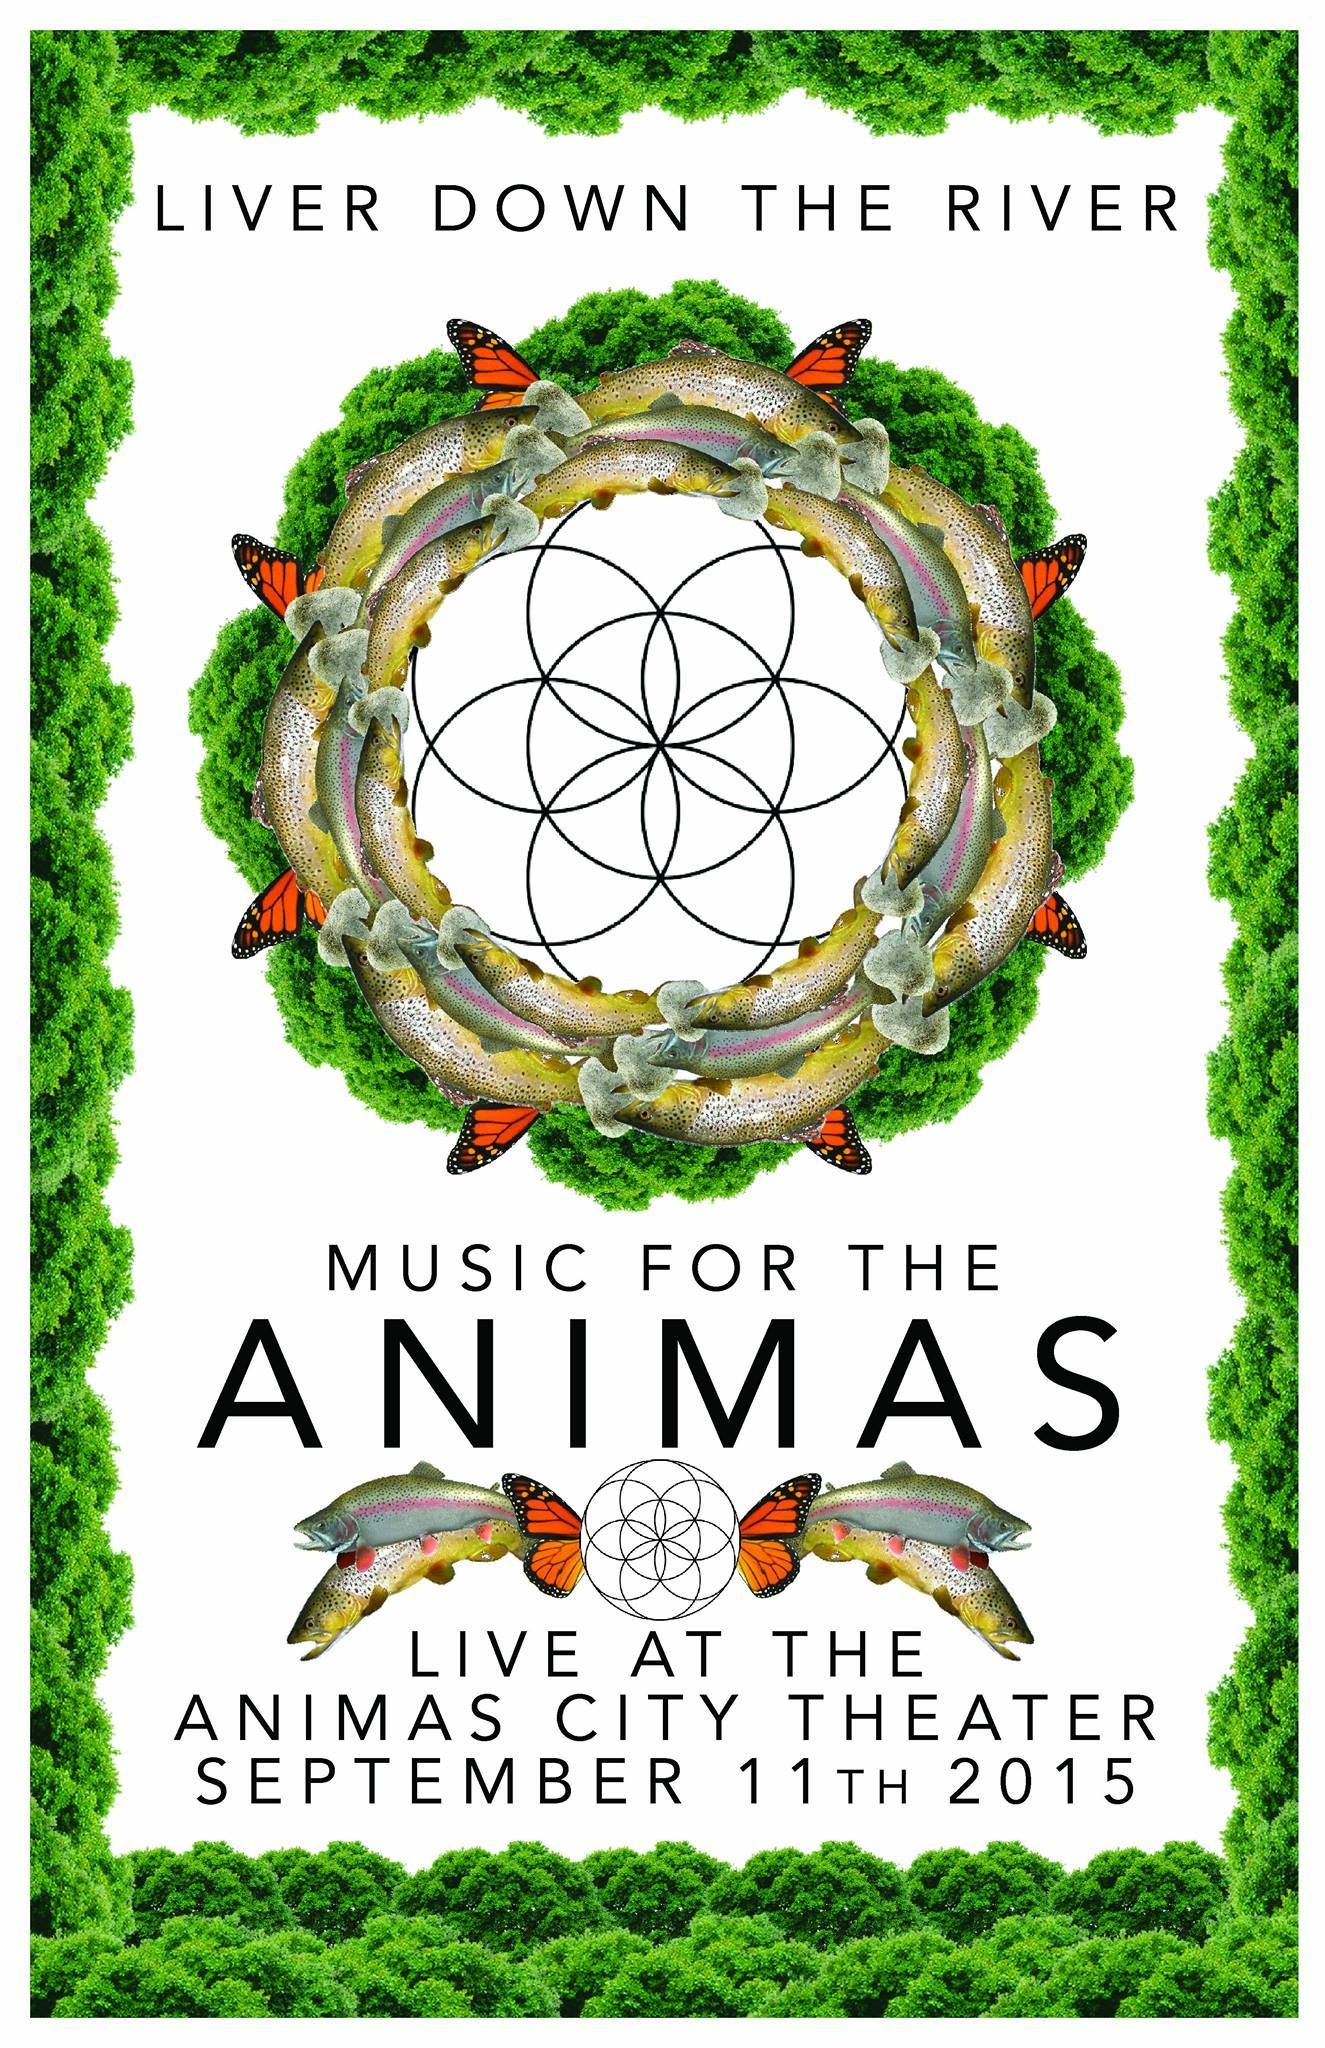 Liver Down The River Announces Benefit for Animas River